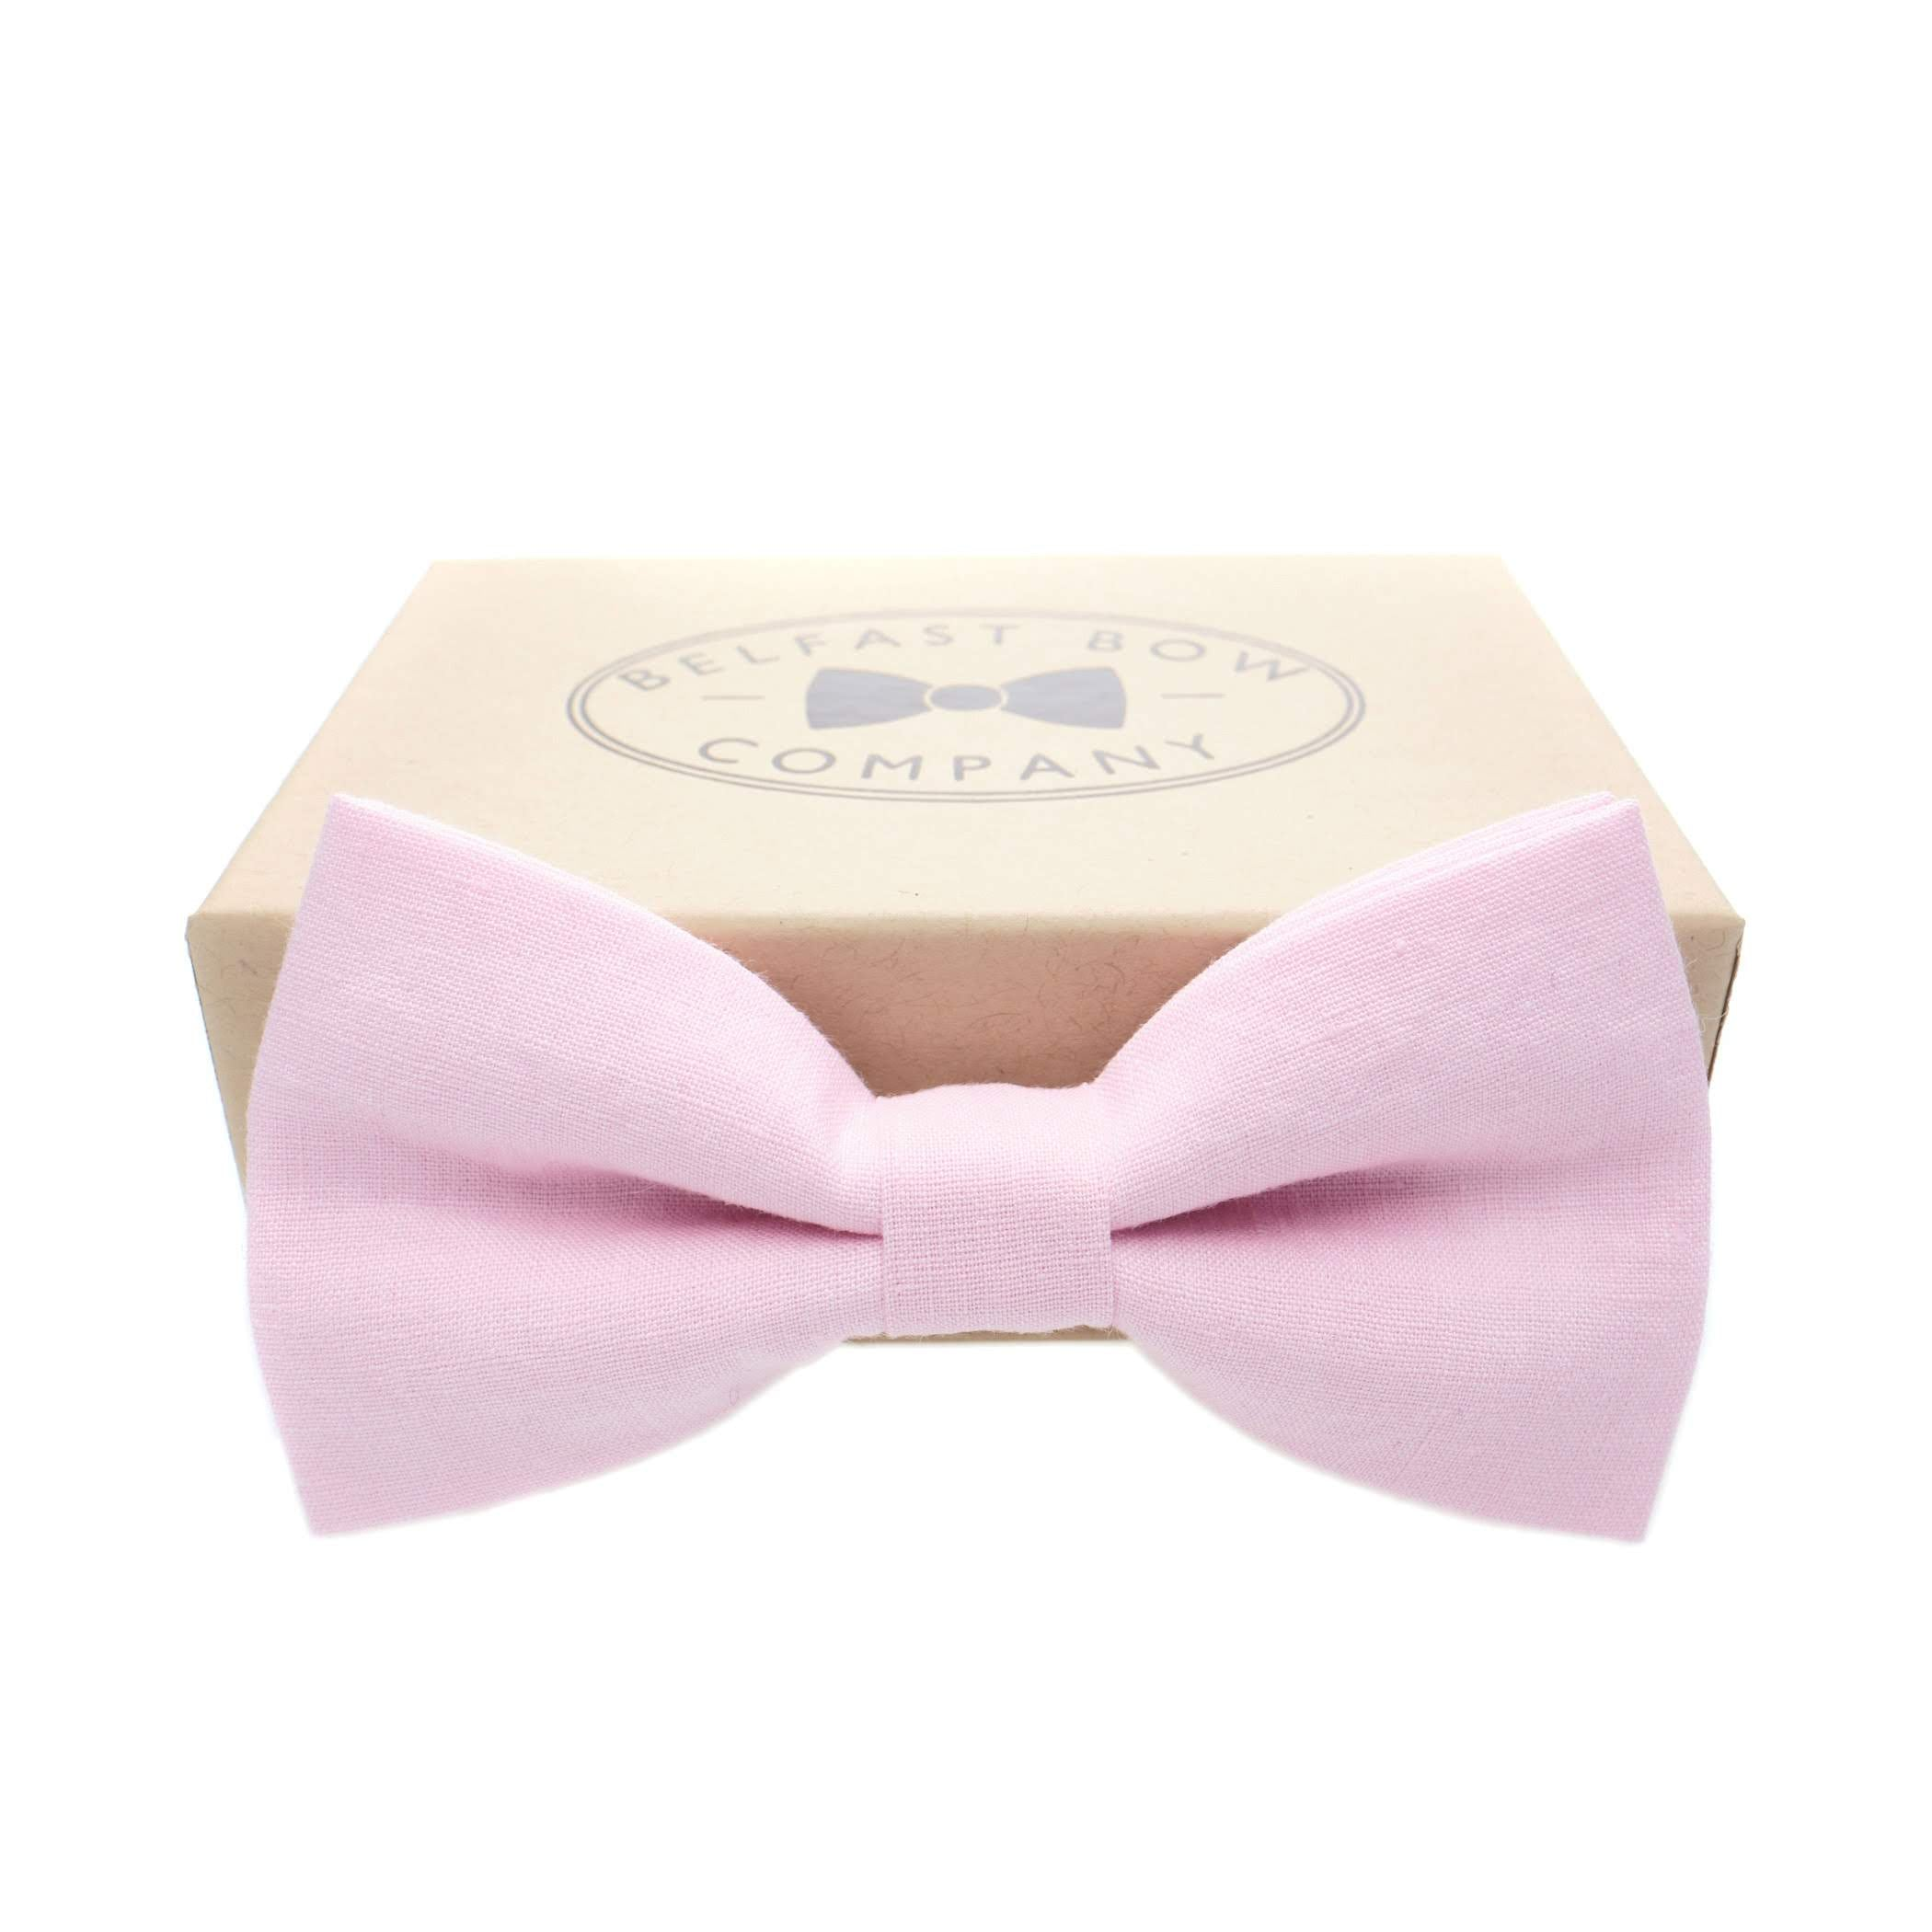 Irish Linen Bow Tie in Pink by the Belfast Bow Company